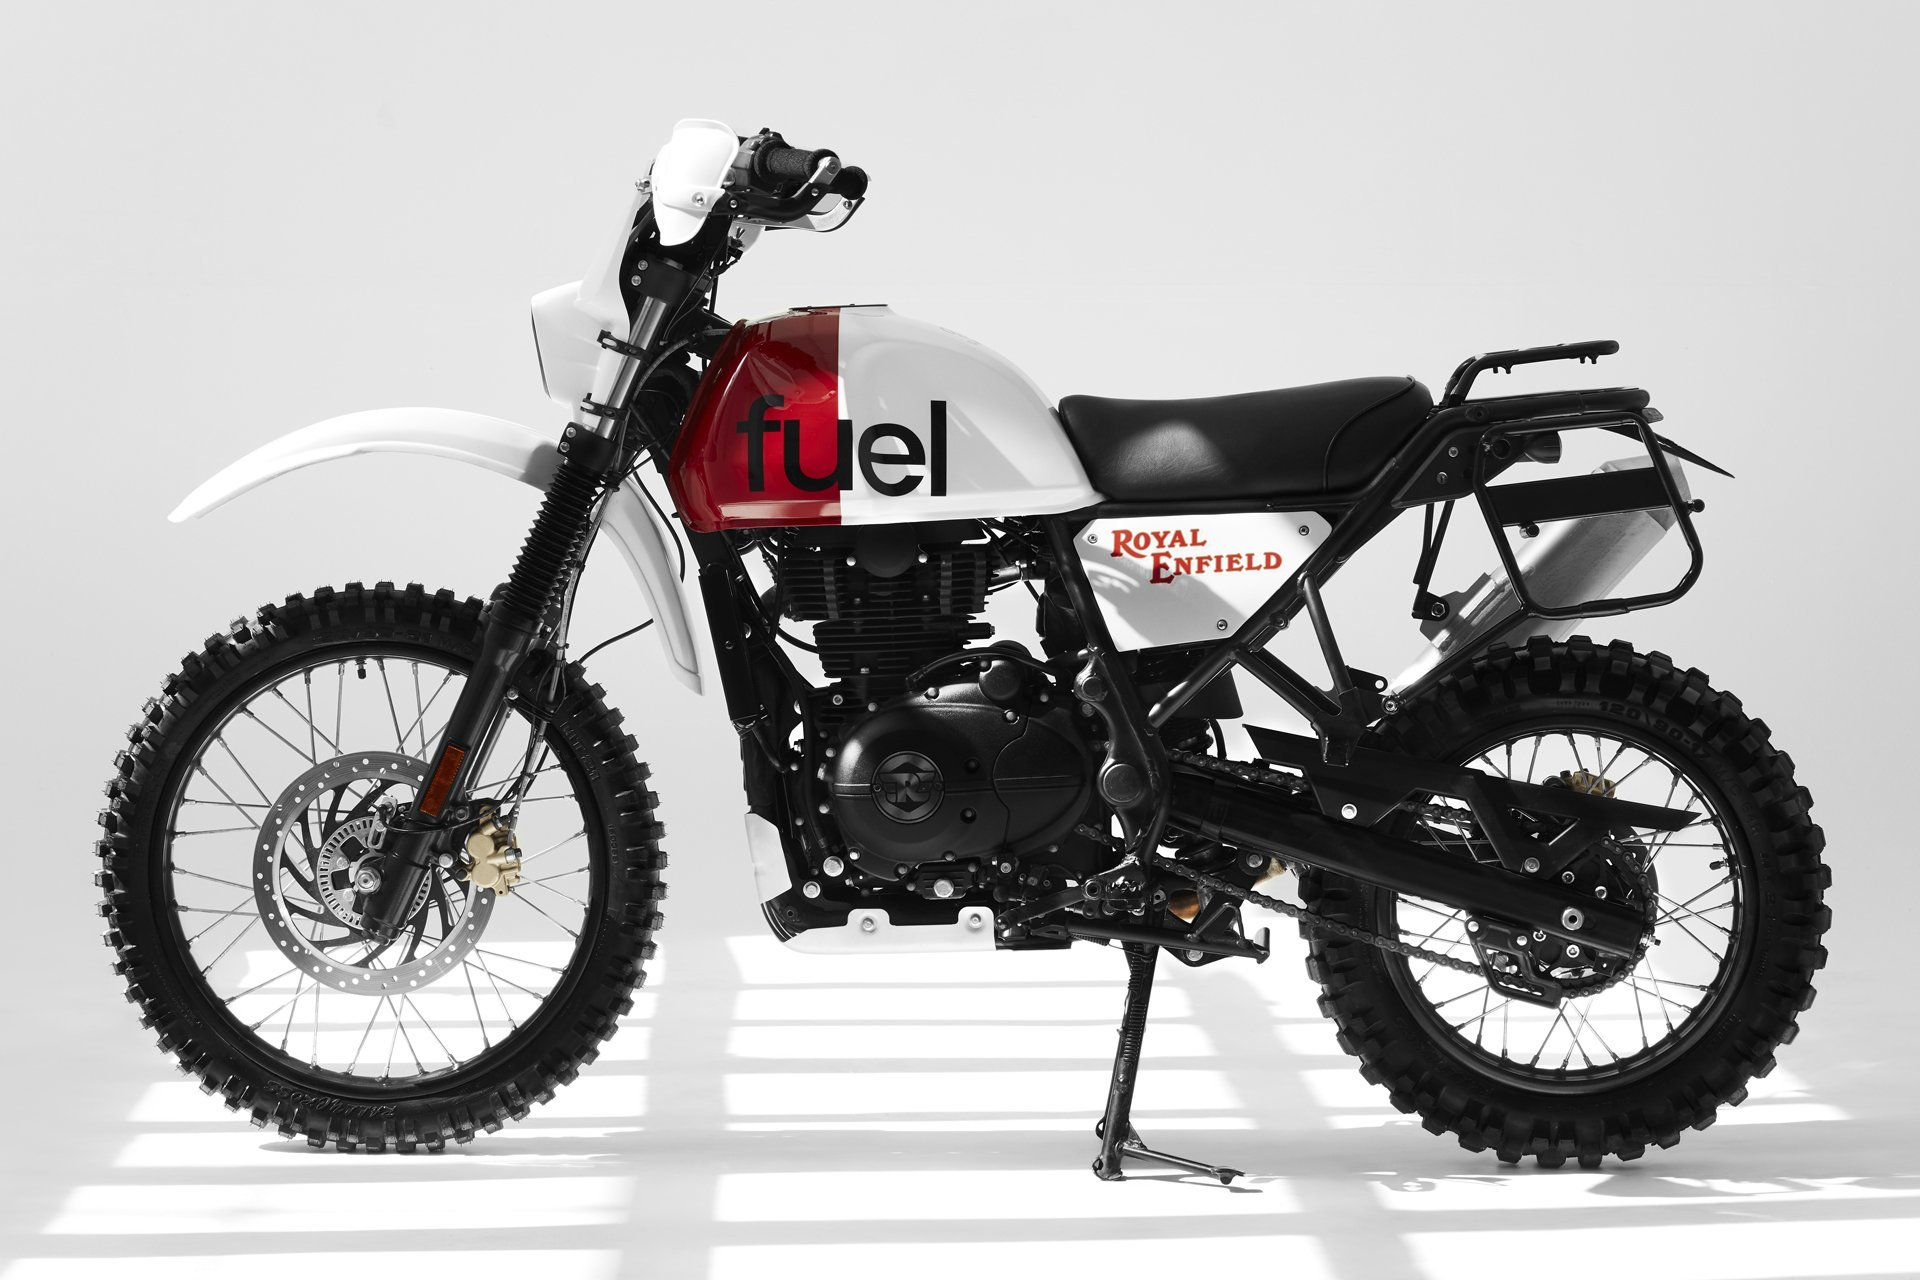 Royal Enfield Fuel Modified Cafe Racer Dm 4